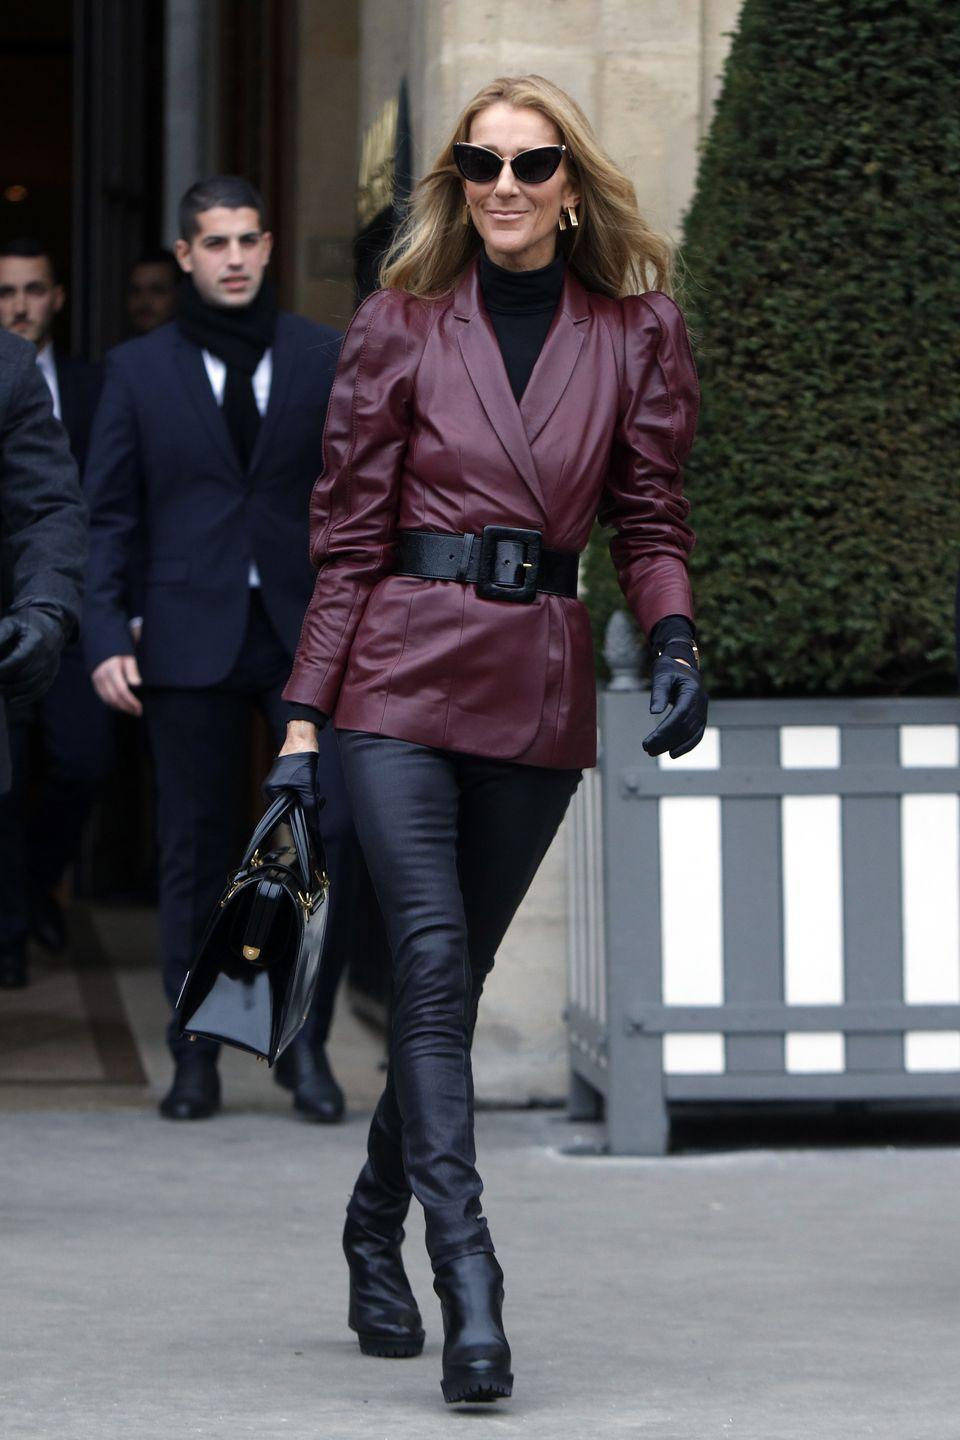 "<p>Hats off to Celine Dion for embracing some of fashion's more intimidating throwback trends. Here she is the height of '80s chic in head-to-toe leather. We love the burgundy color of the jacket and the cinched waist adds extra polish.</p><p><strong>RELATED:</strong> <a href=""https://www.goodhousekeeping.com/beauty/hair/g28122979/80s-hair-ideas/"" rel=""nofollow noopener"" target=""_blank"" data-ylk=""slk:13 Amazing Hairstyles from the '80s"" class=""link rapid-noclick-resp"">13 Amazing Hairstyles from the '80s</a></p>"